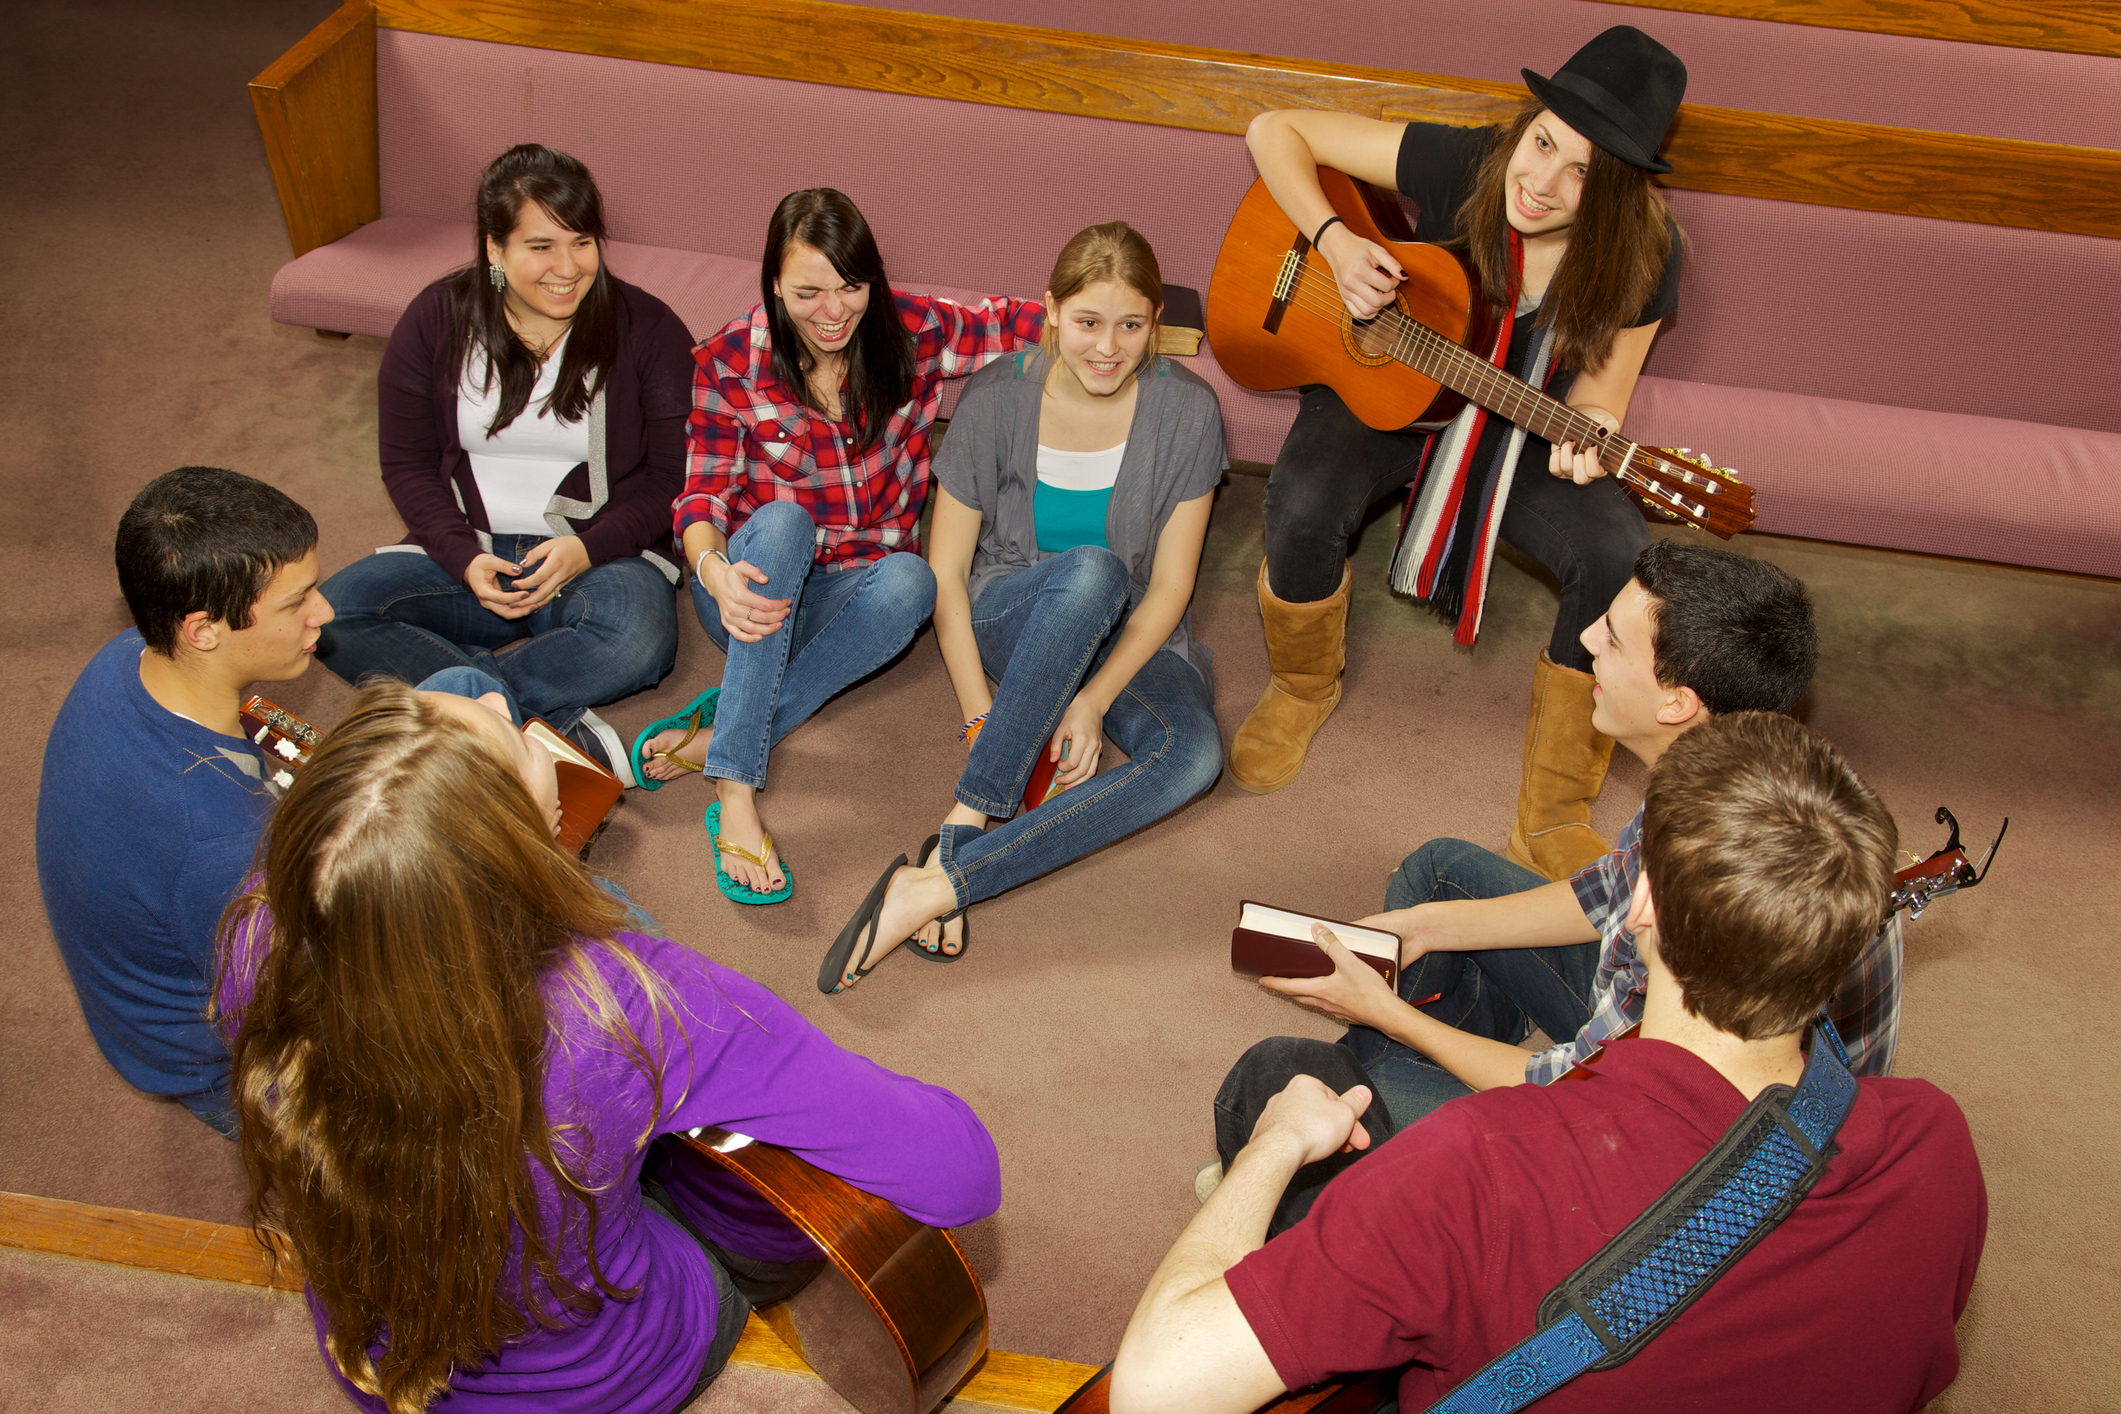 icebreakers for christian teens